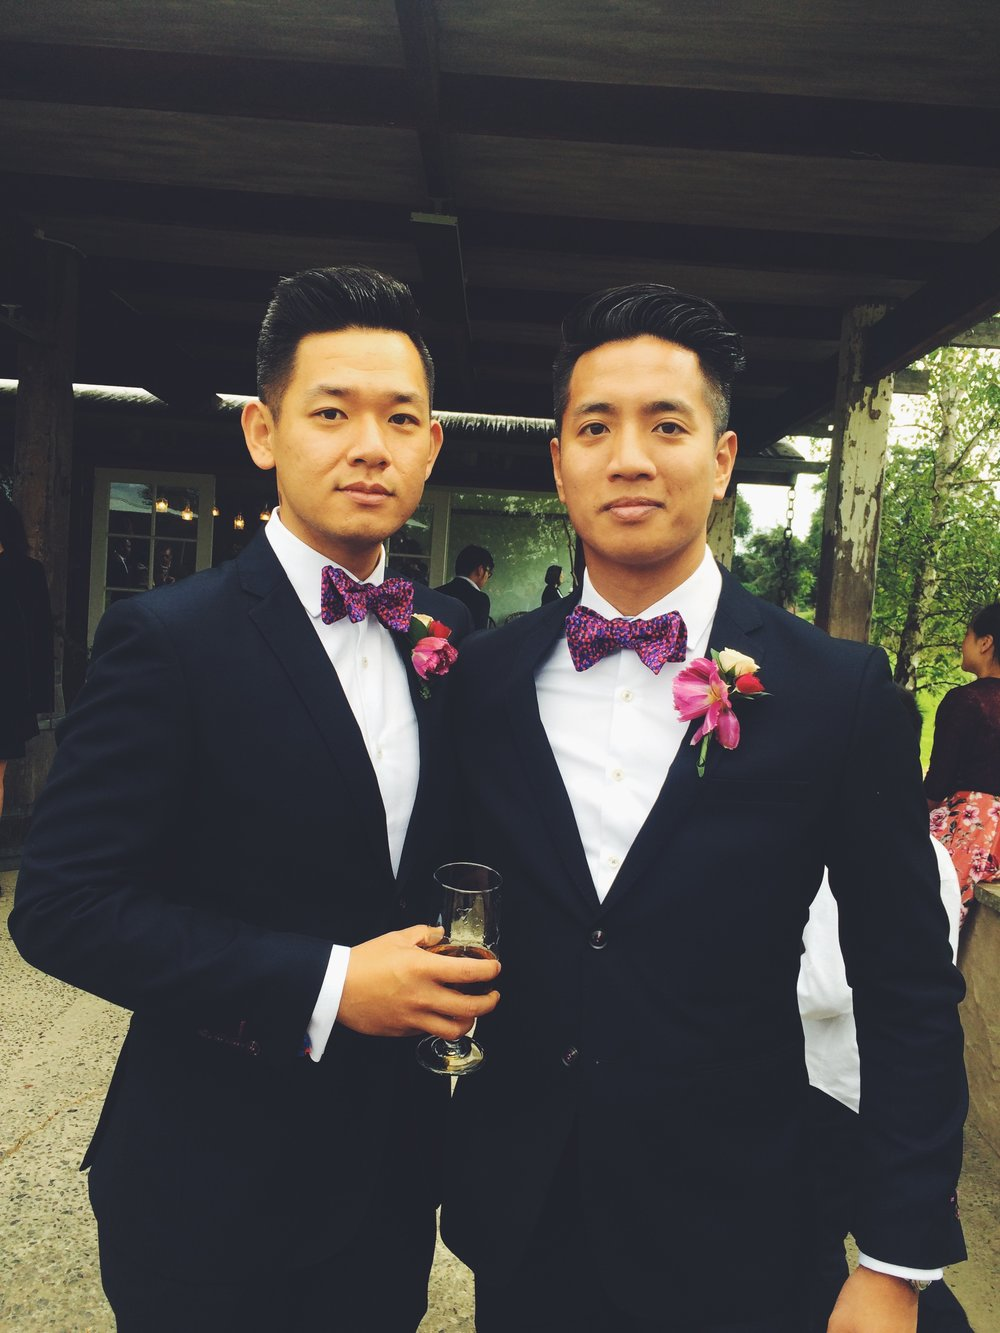 edward kwan bow ties.JPG